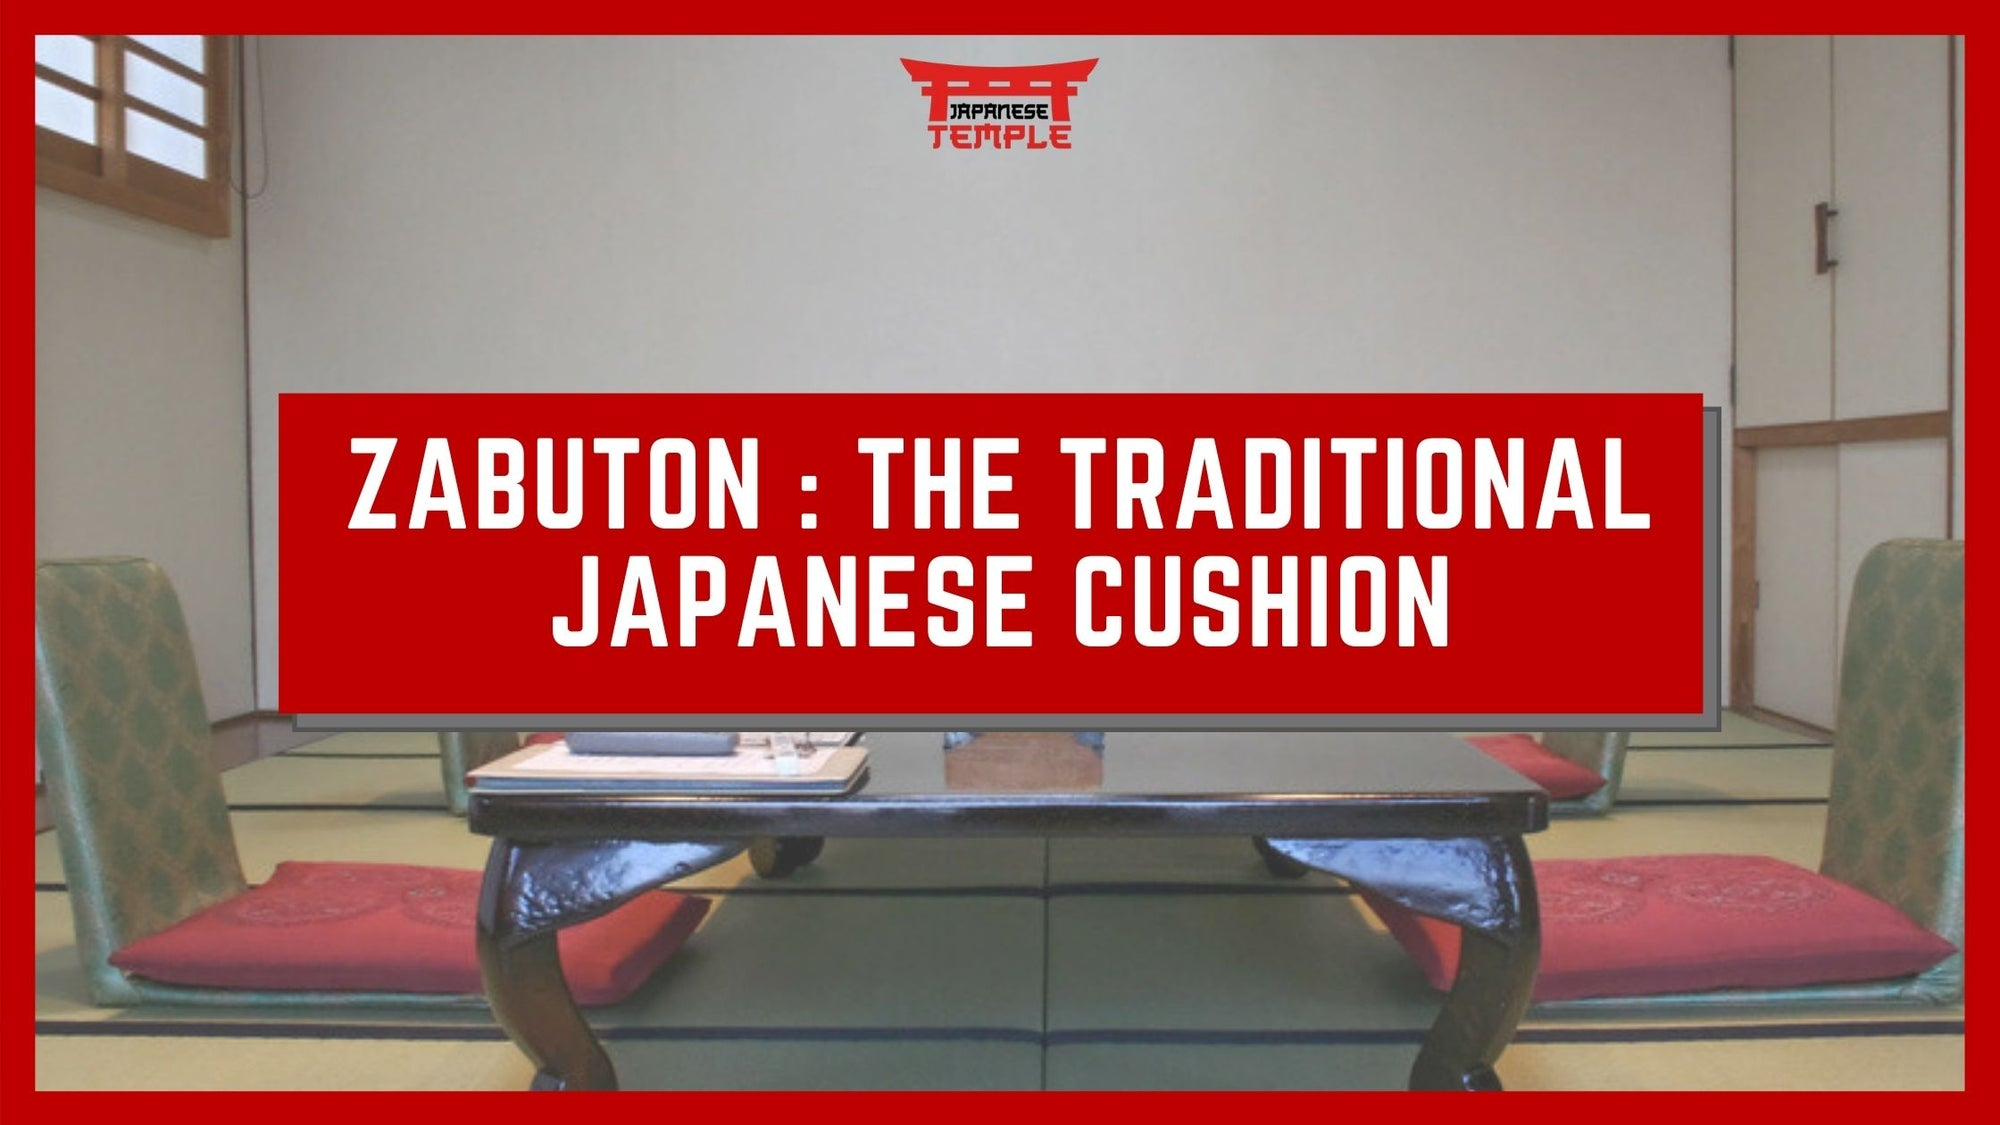 ZABUTON : THE TRADITIONAL JAPANESE CUSHION